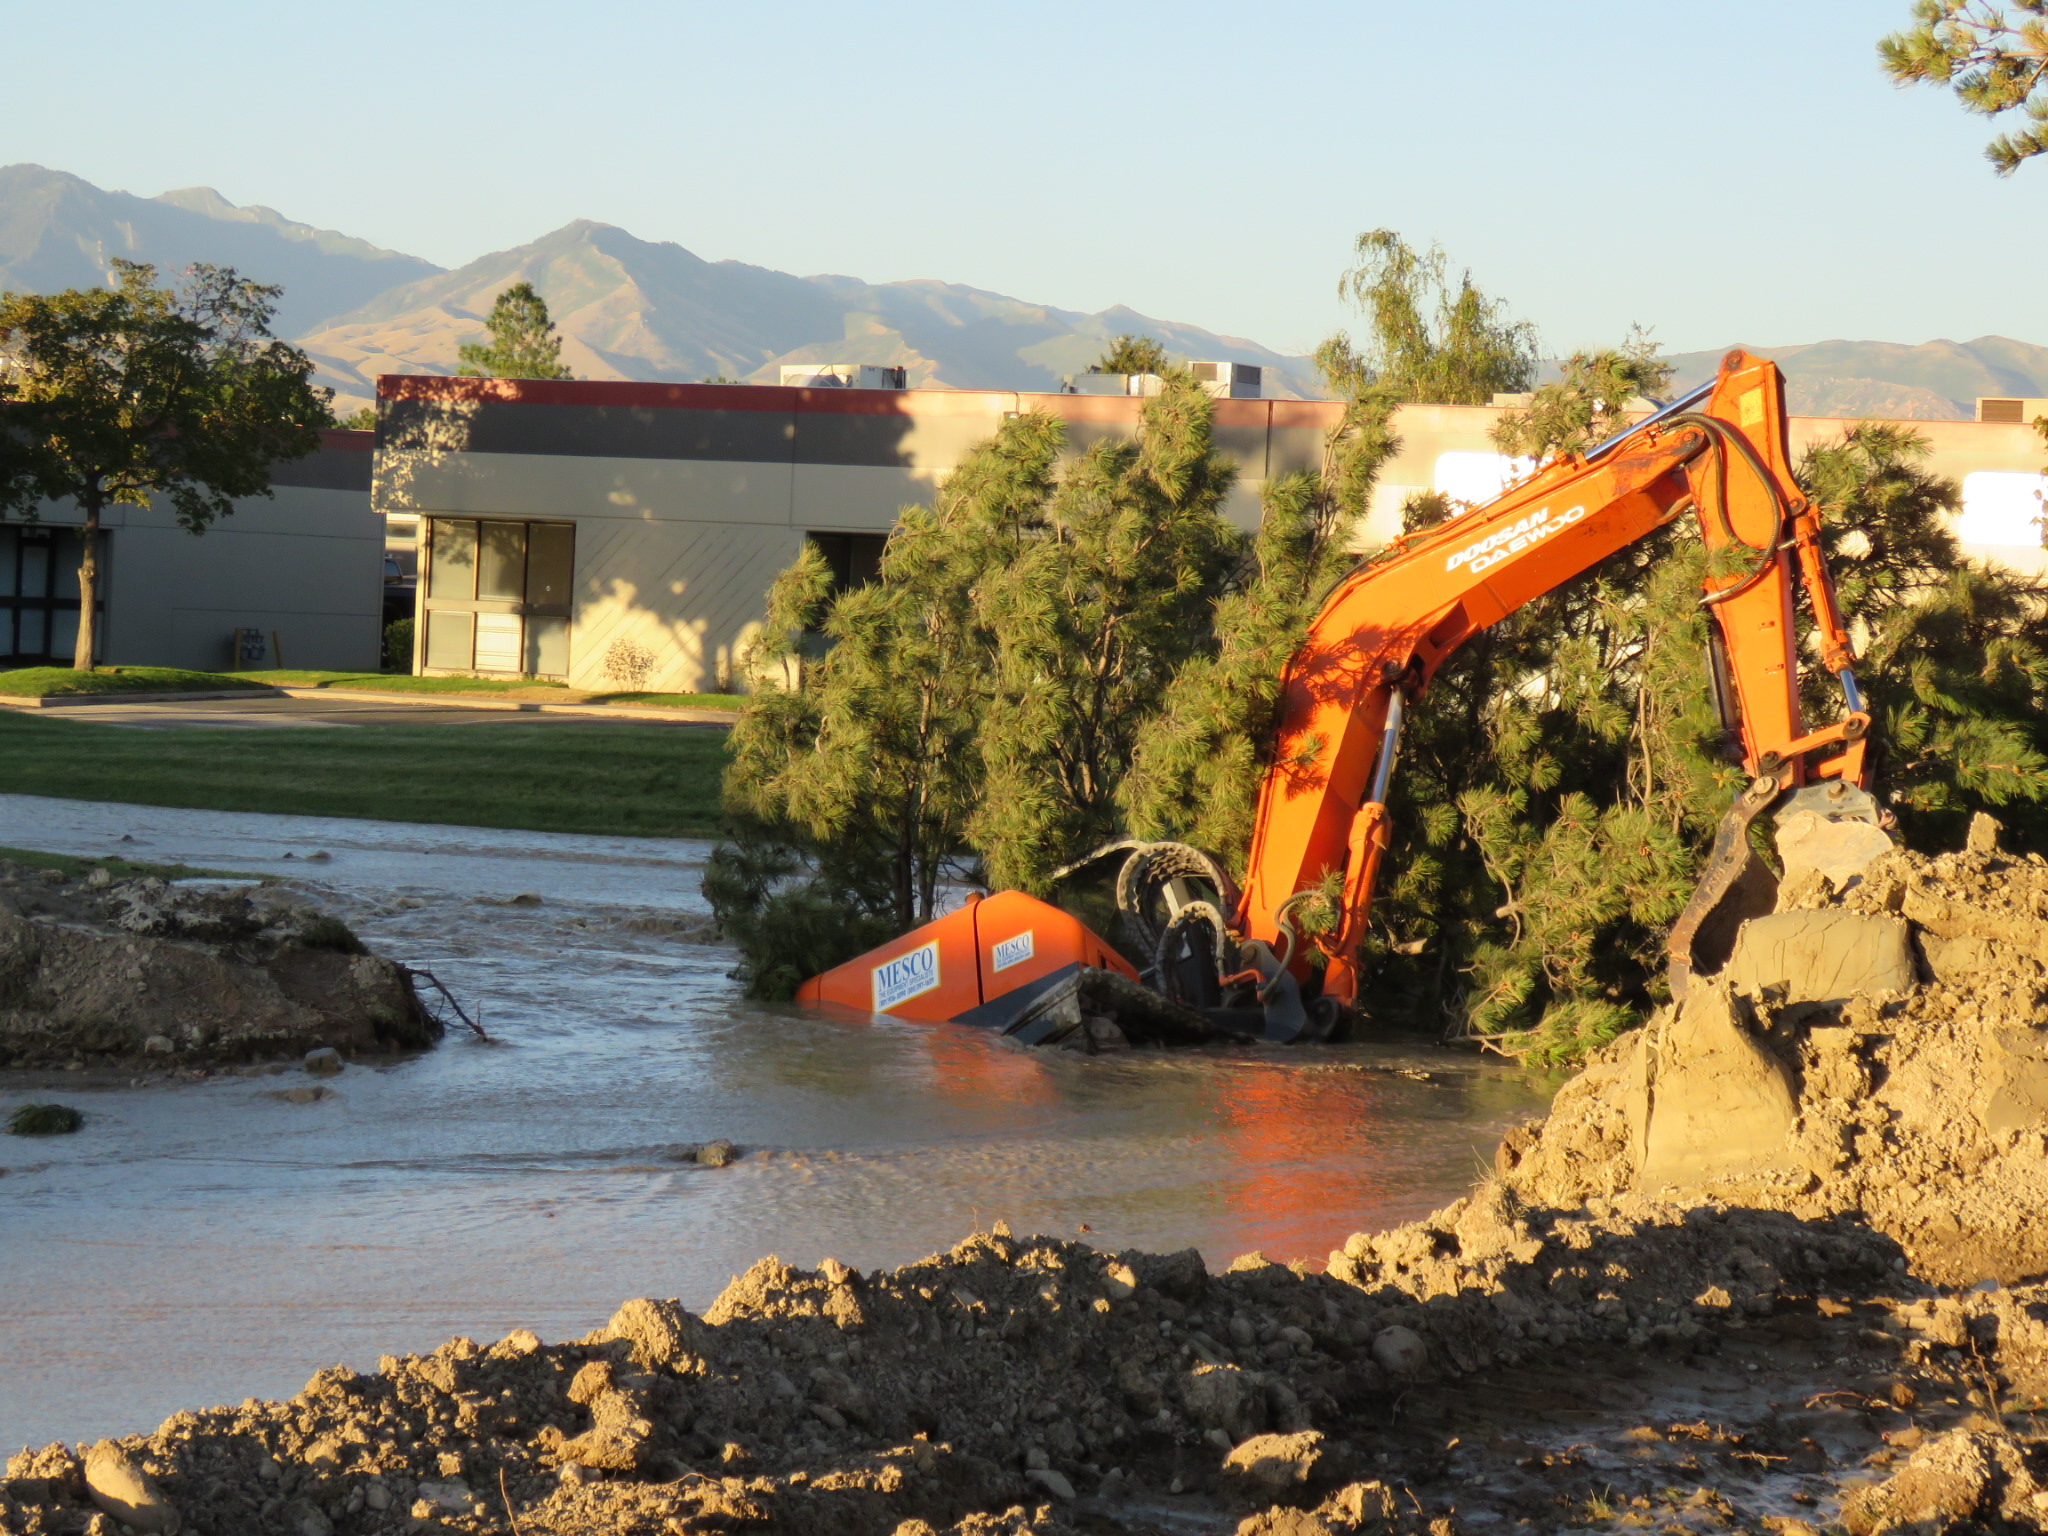 Water Main Break Causes Urban Flood In Salt Lake City | Gephardt Daily